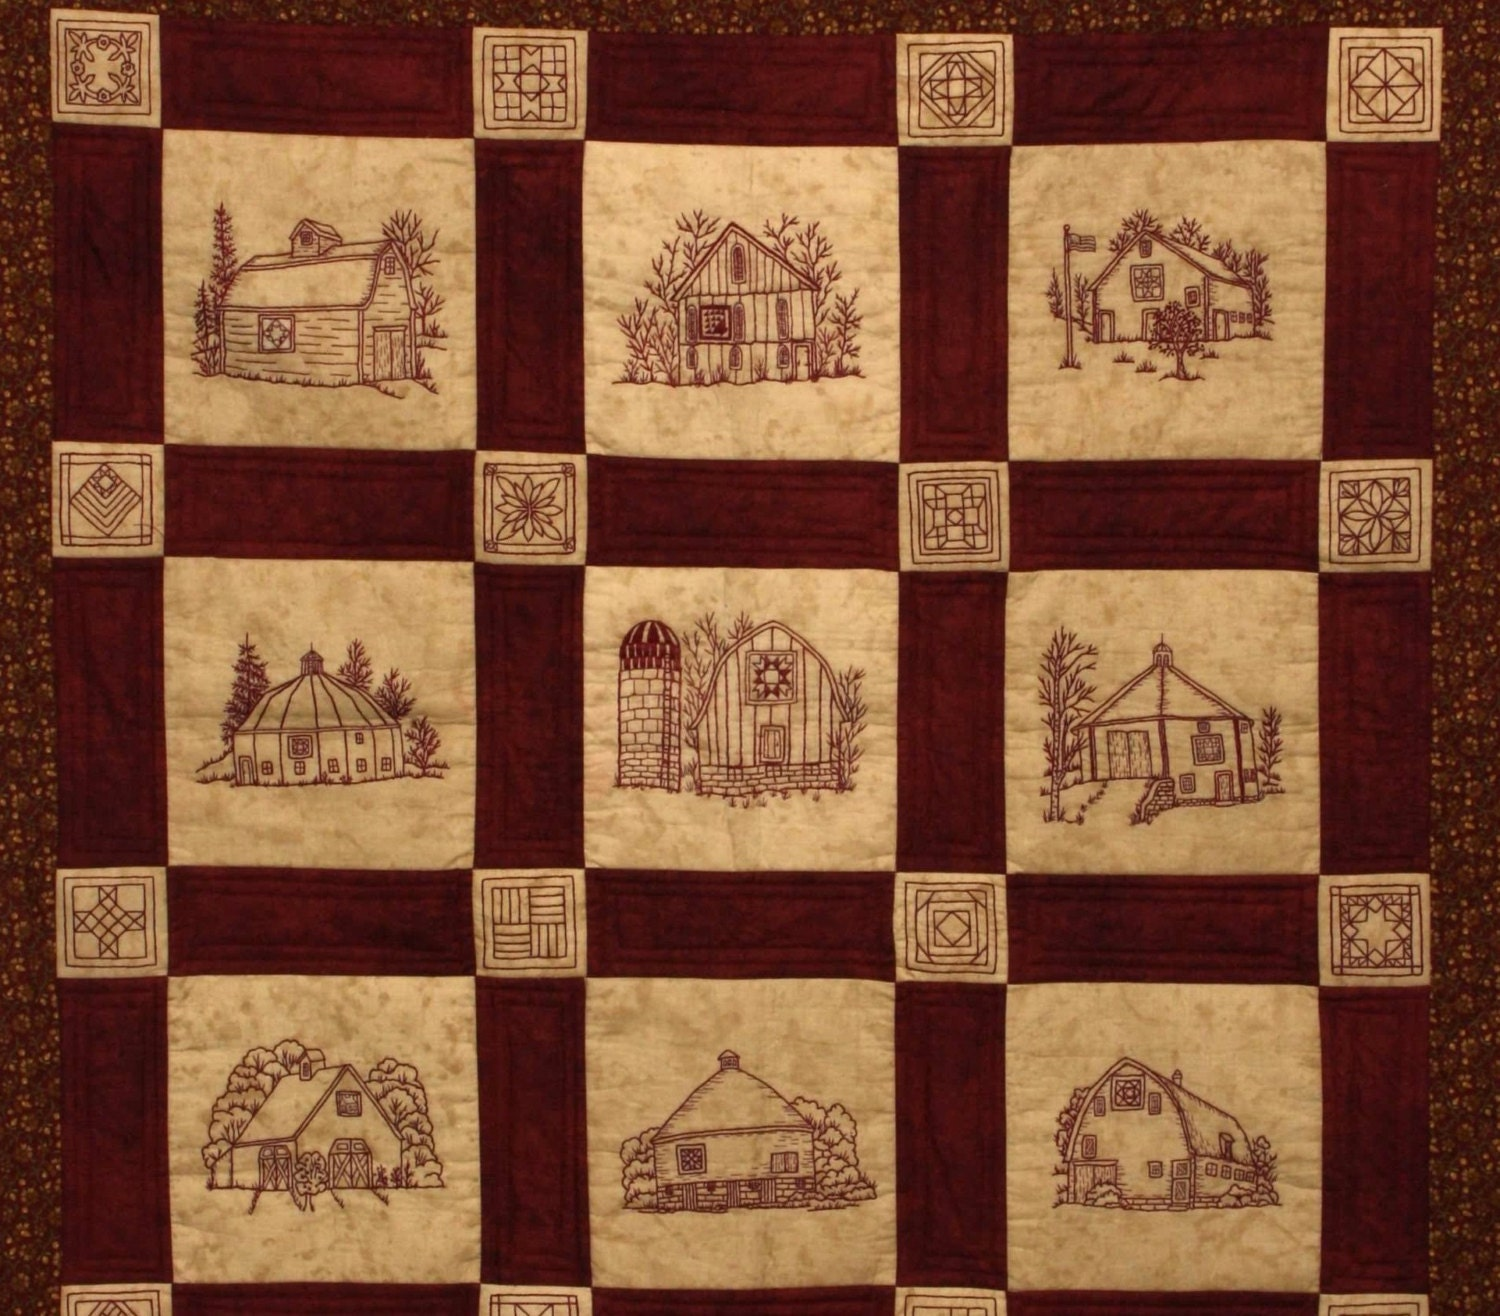 Quilt barns pattern redwork hand embroidery blocks